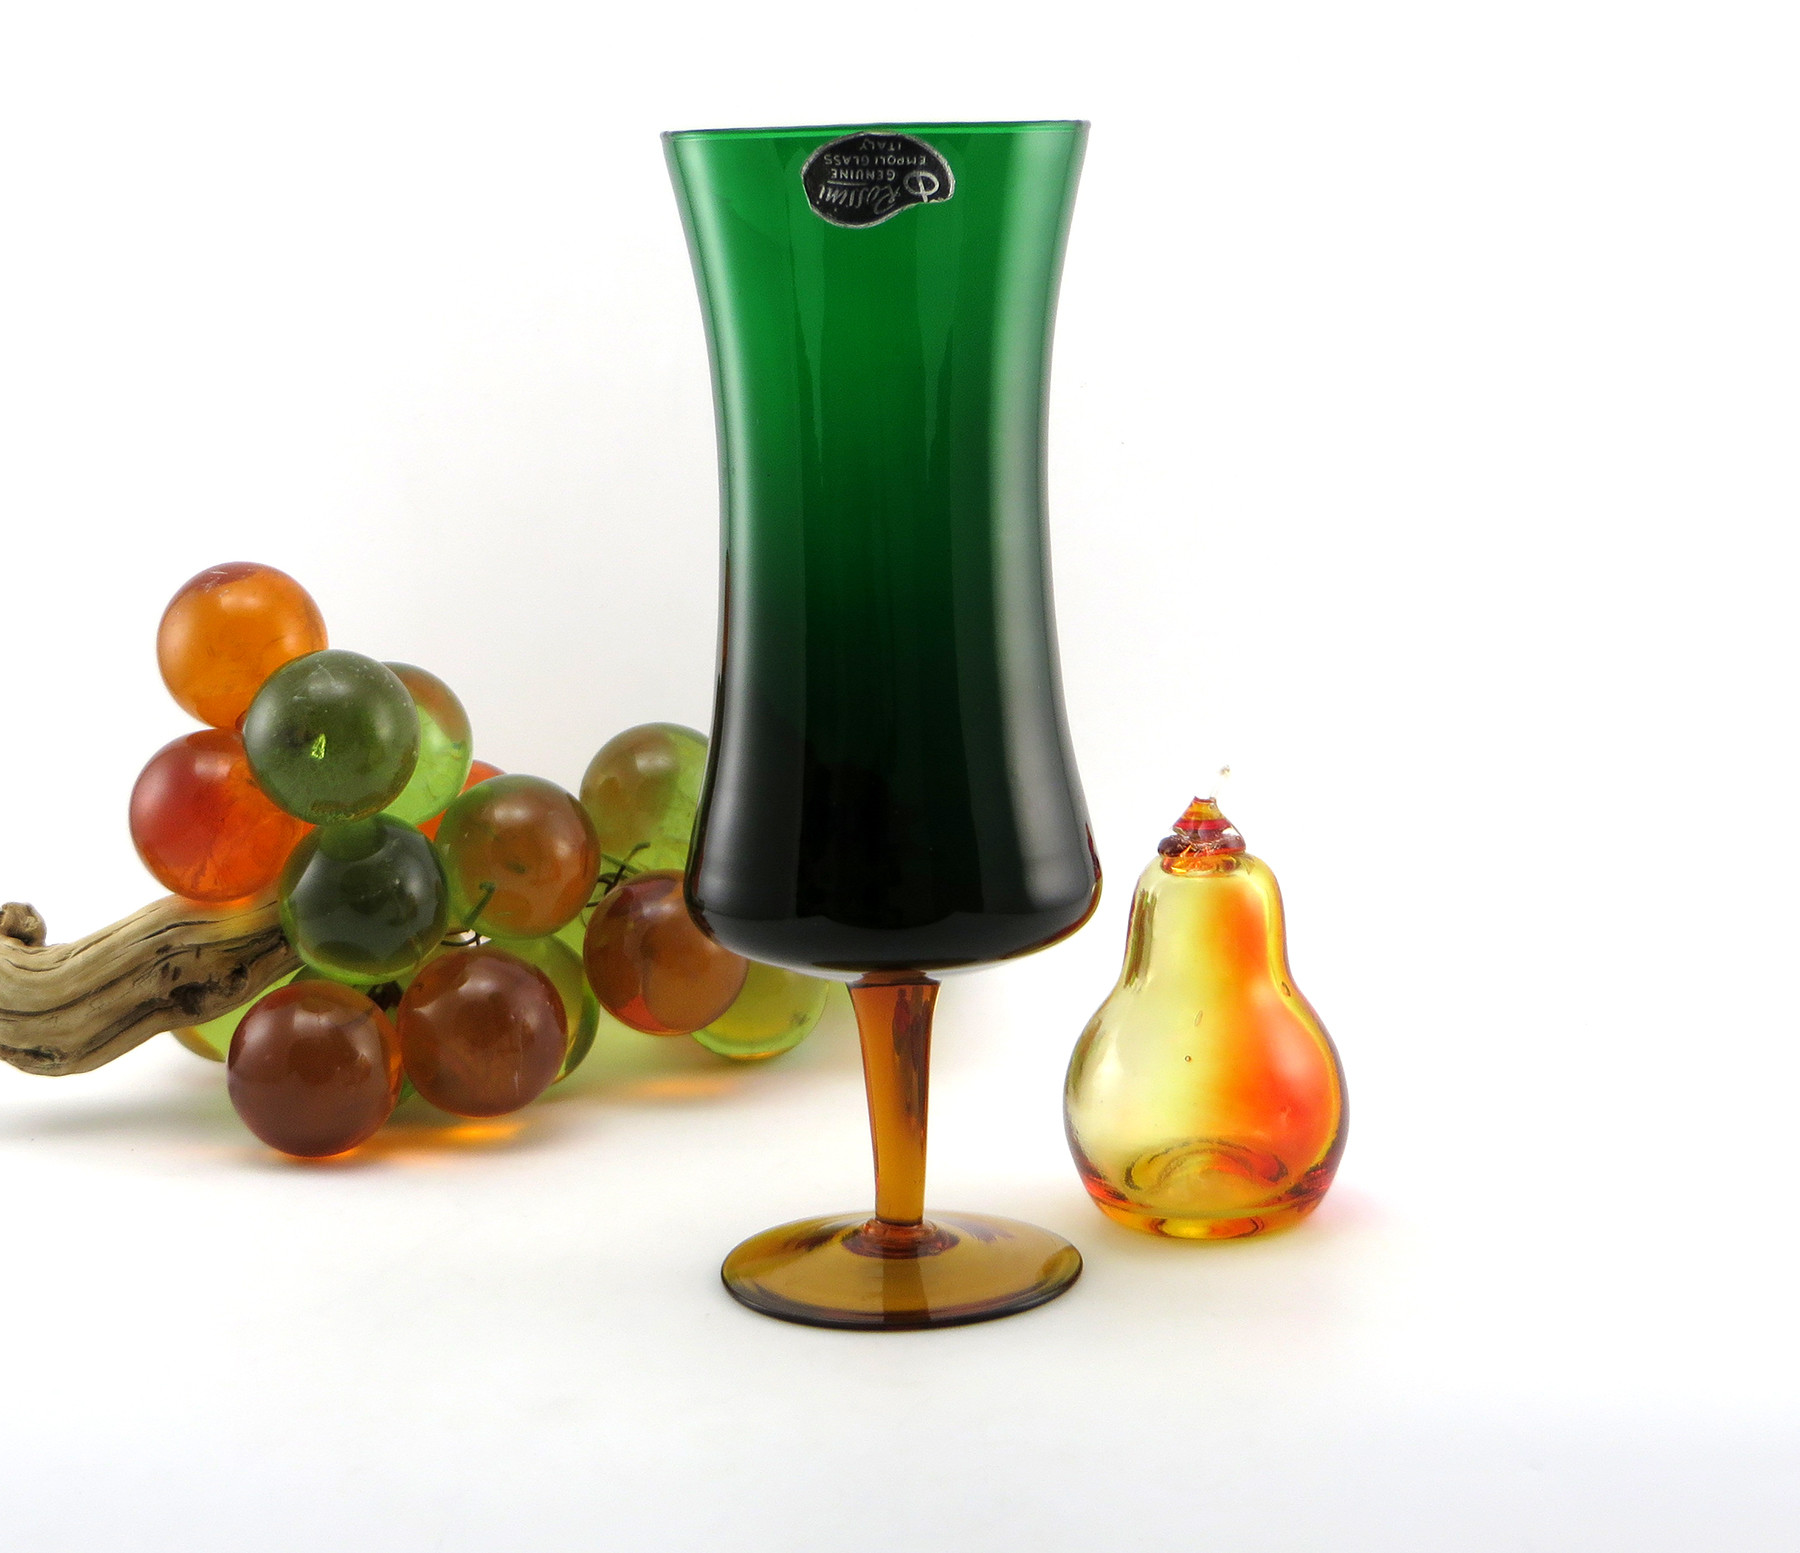 Antique Bohemian Glass Vase Of Rossini Empoli Art Glass Retro Modern Vase with Label Retro Art Glass Throughout Rossini Empoli Art Glass Retro Modern Vase with Label